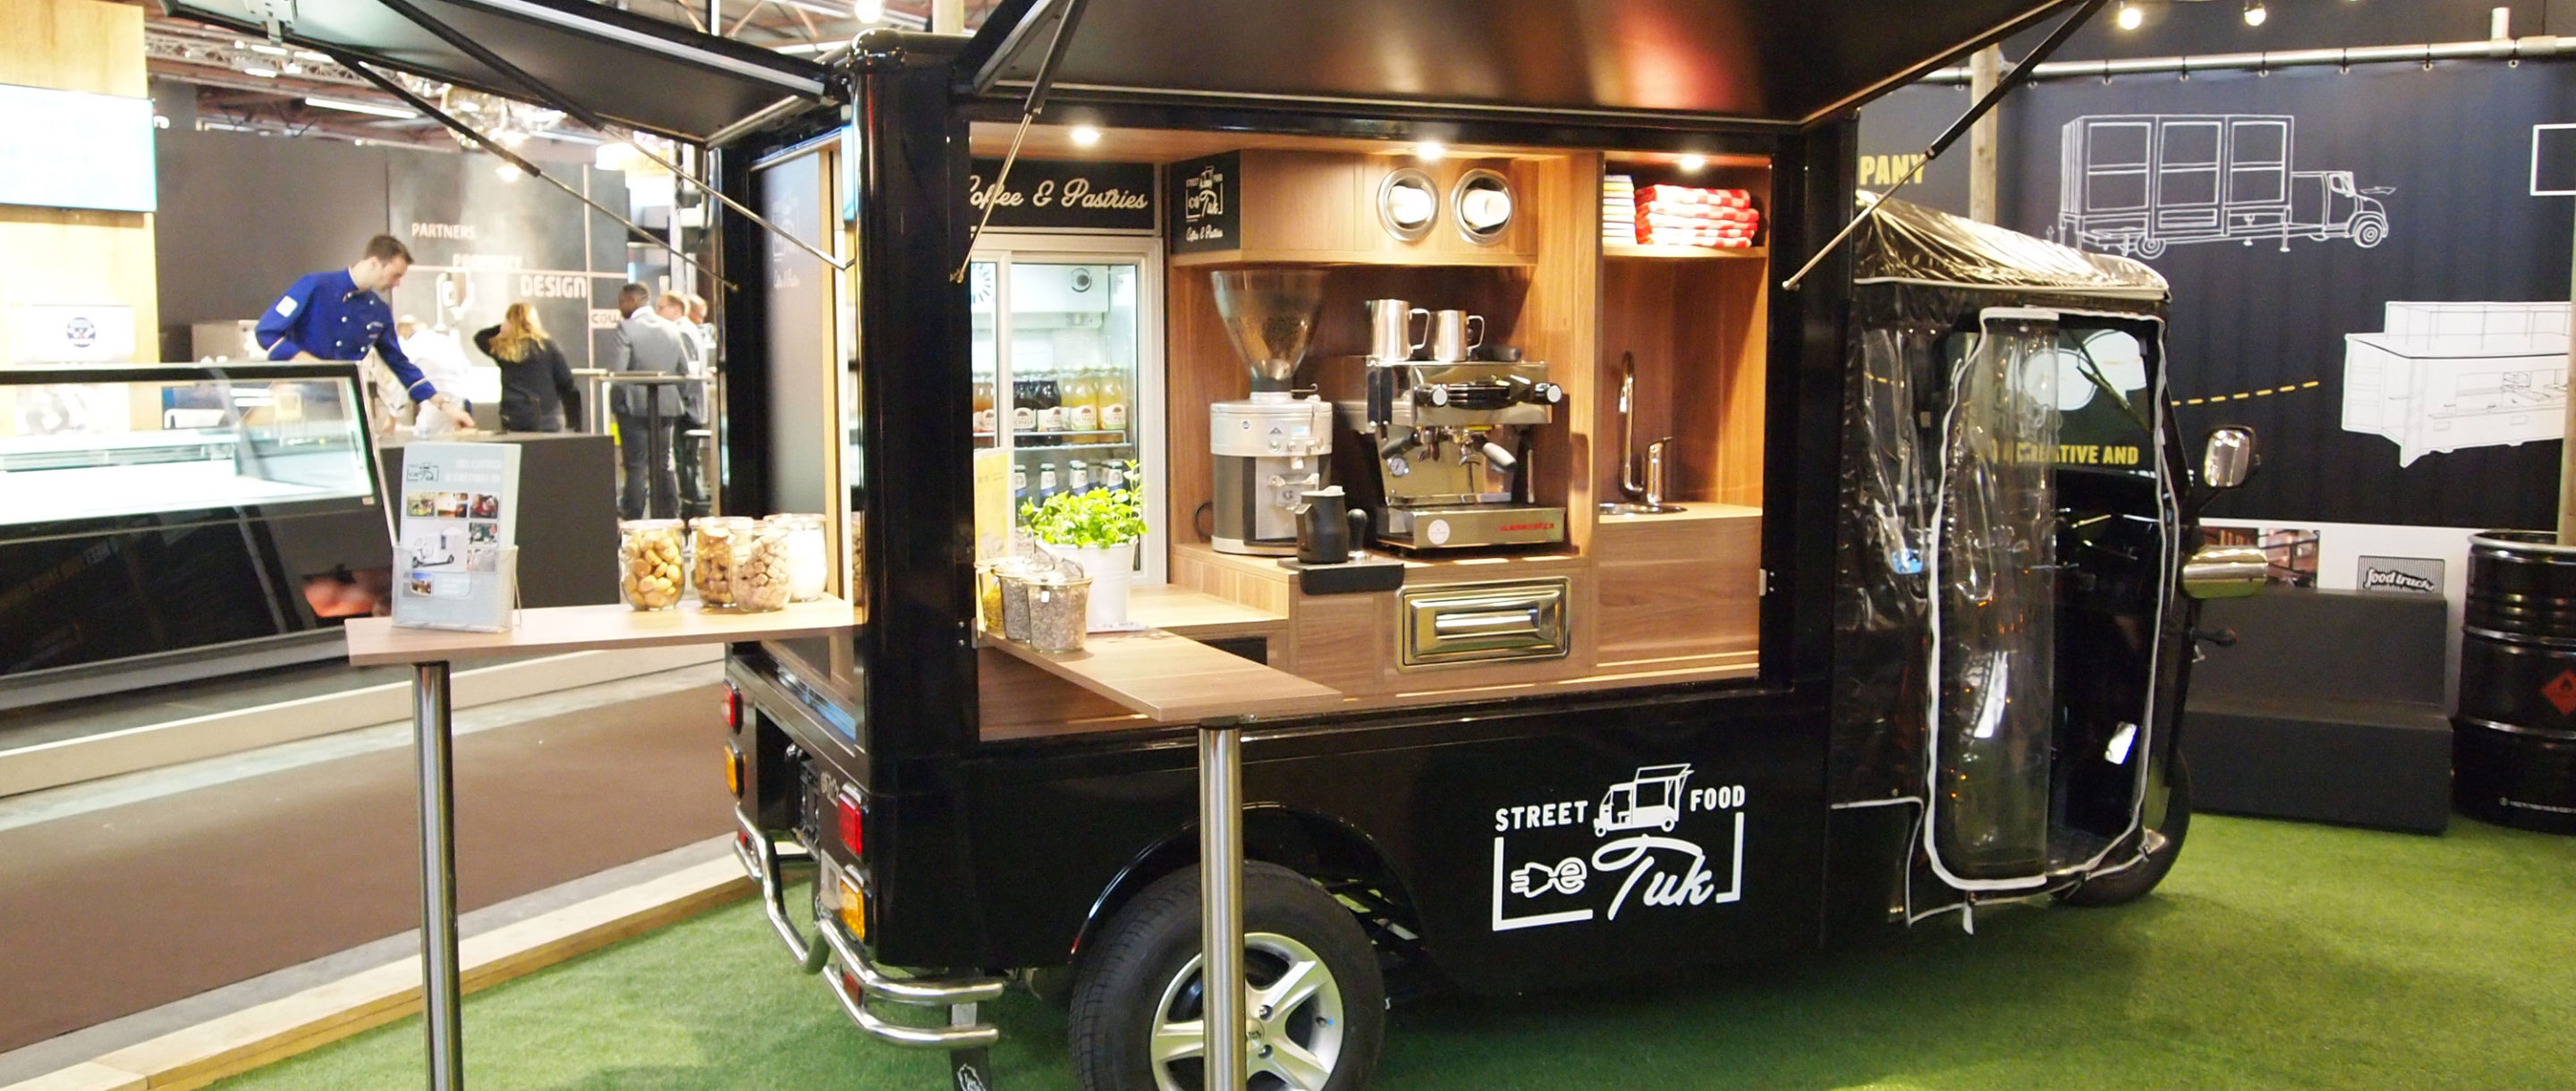 Bedenker en bouwer van o a maatwerk food trucks for Bar 96 food truck